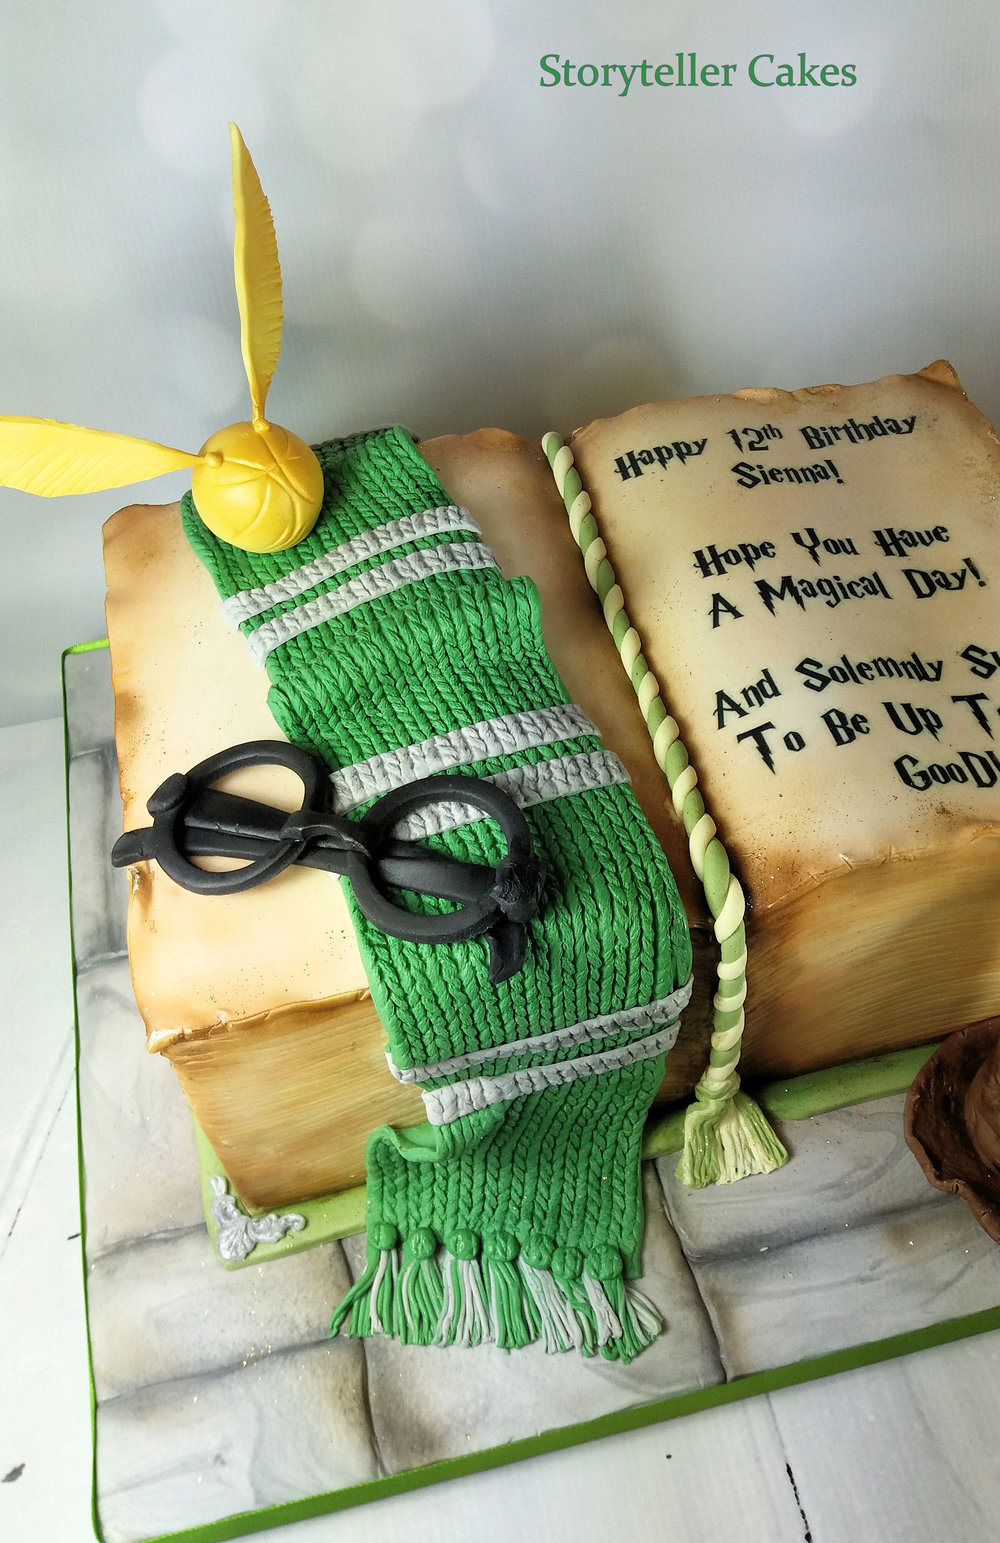 Harry Potter Book Cake 3.jpg